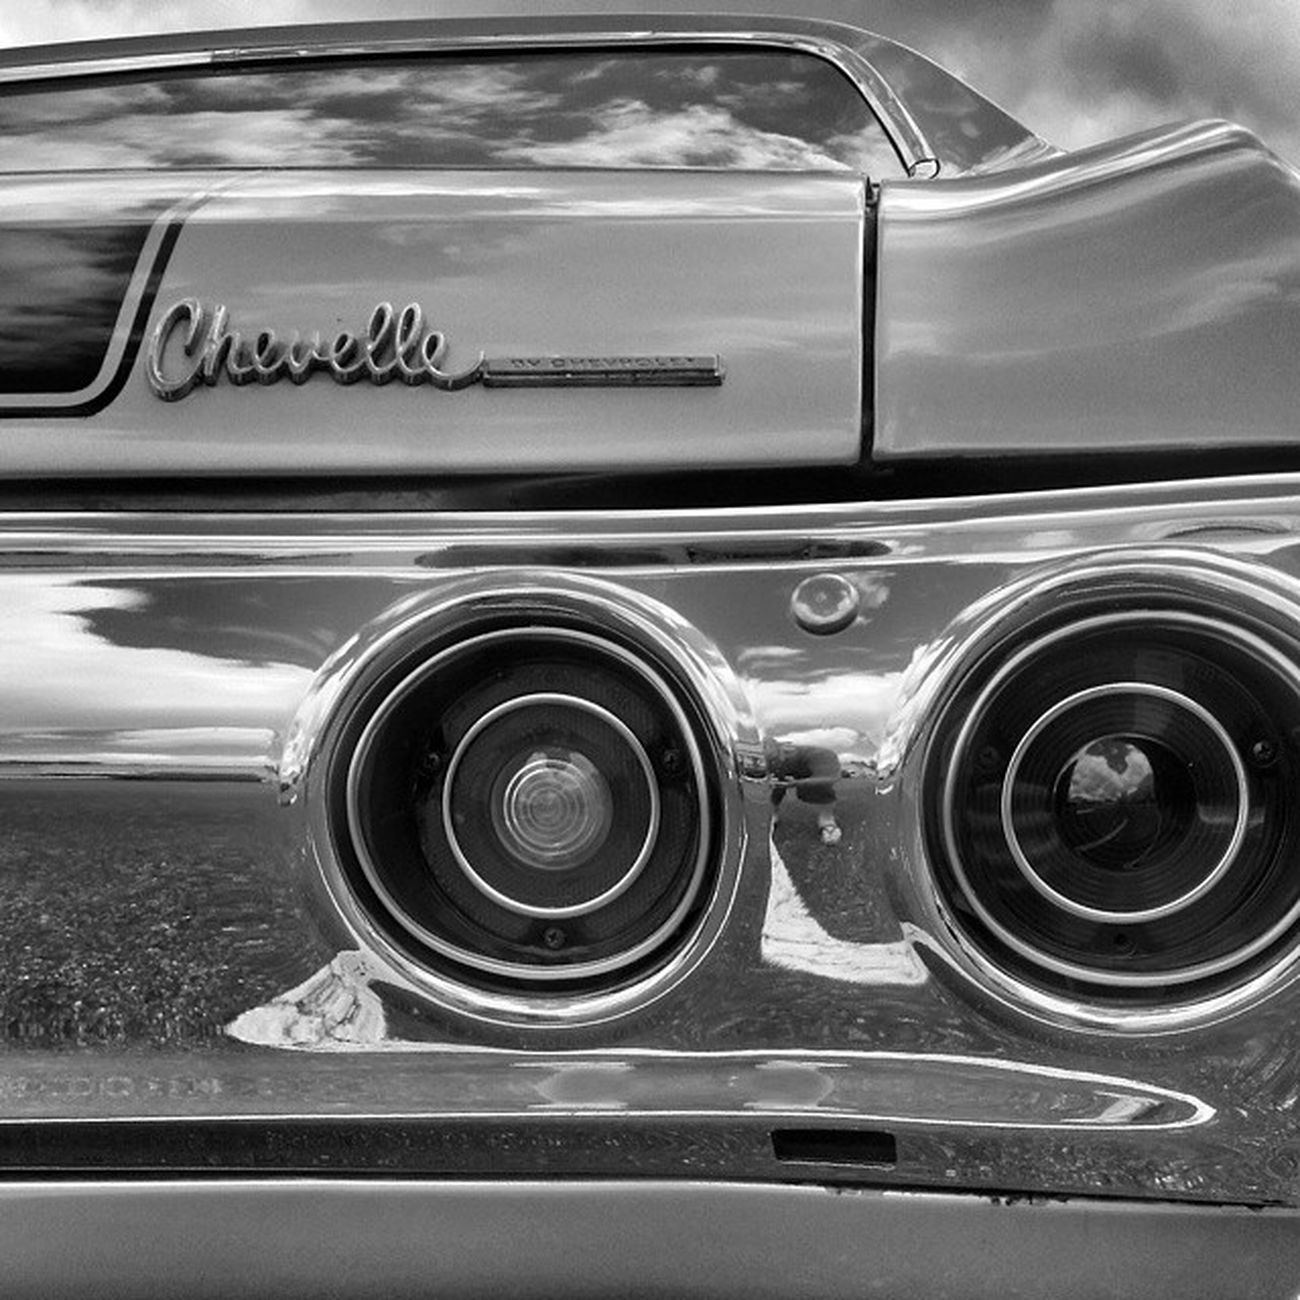 Chevelle Trb_bnw Trb_macro Trb_autozone Autos_of_our_world autoshow car_czars car_crests bnw_life bpa_bnw bpa_hdr hdr_transport jj_transportation jj_unitedstates rustlord_carz shutterbug_collective roadwarrior_hdr roadwarrior_dispatch dirtmerchantautos igcars ic_wheels ptk_vehicles splendid_transport tv_hdr ipulledoverforthis loves_transports rlord_bnw_carz_wheelz